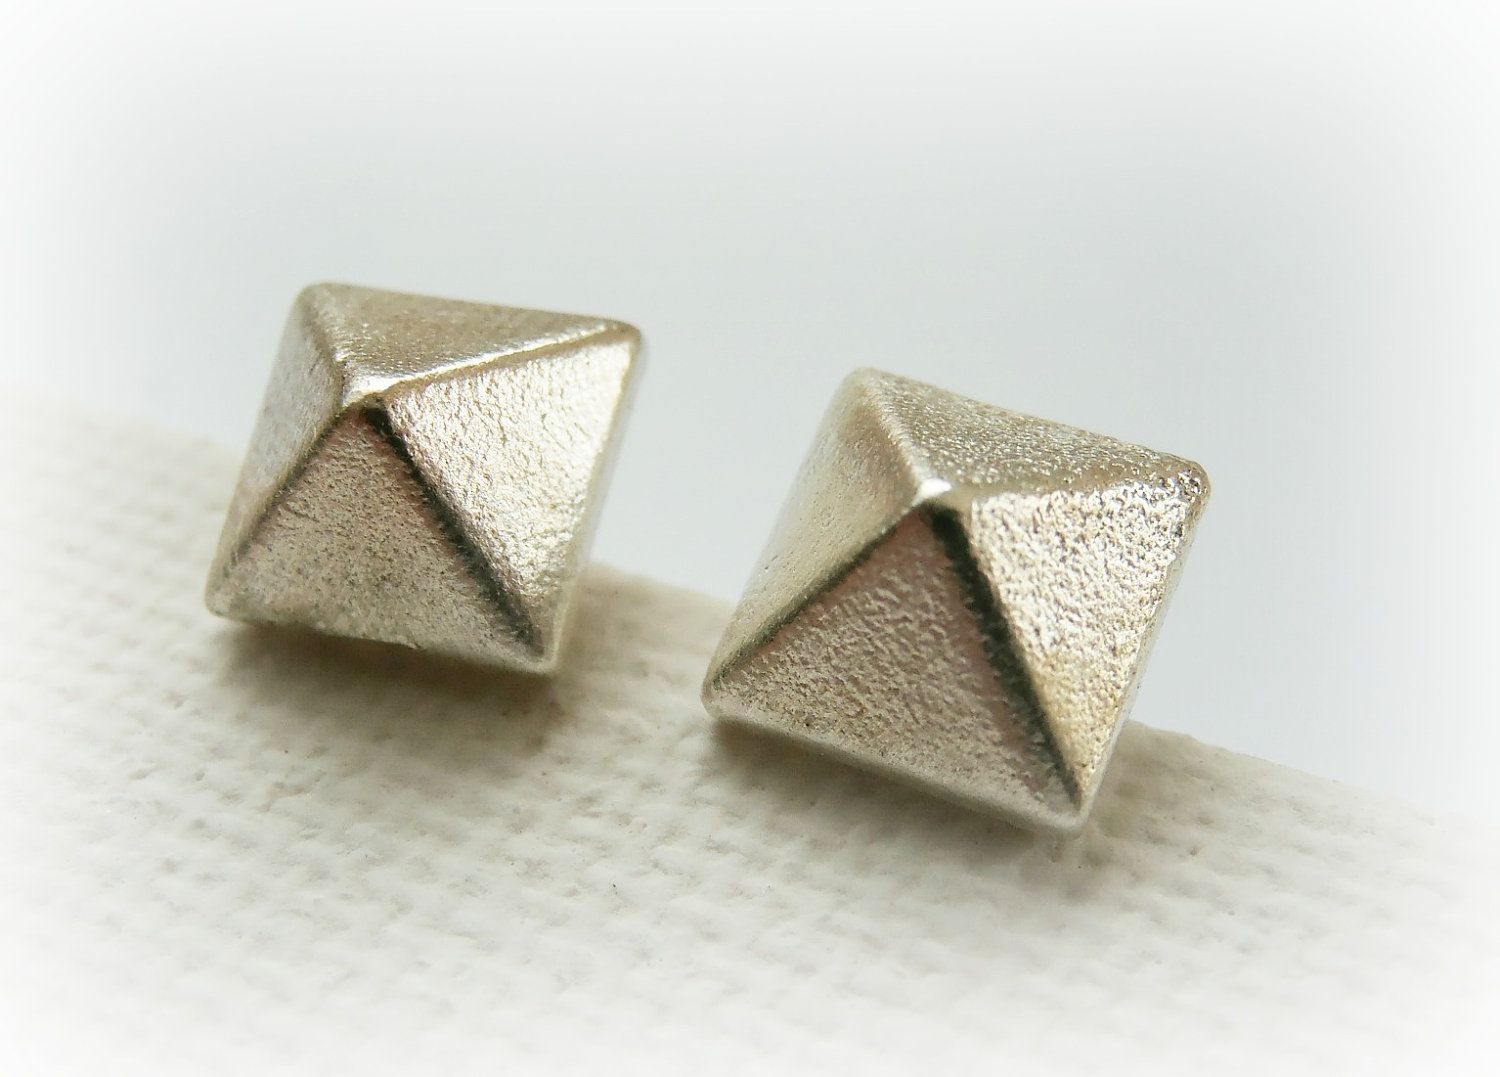 9a664144d Sterling silver pyramid stud earrings - square stud earrings. $35.00, via  Etsy.